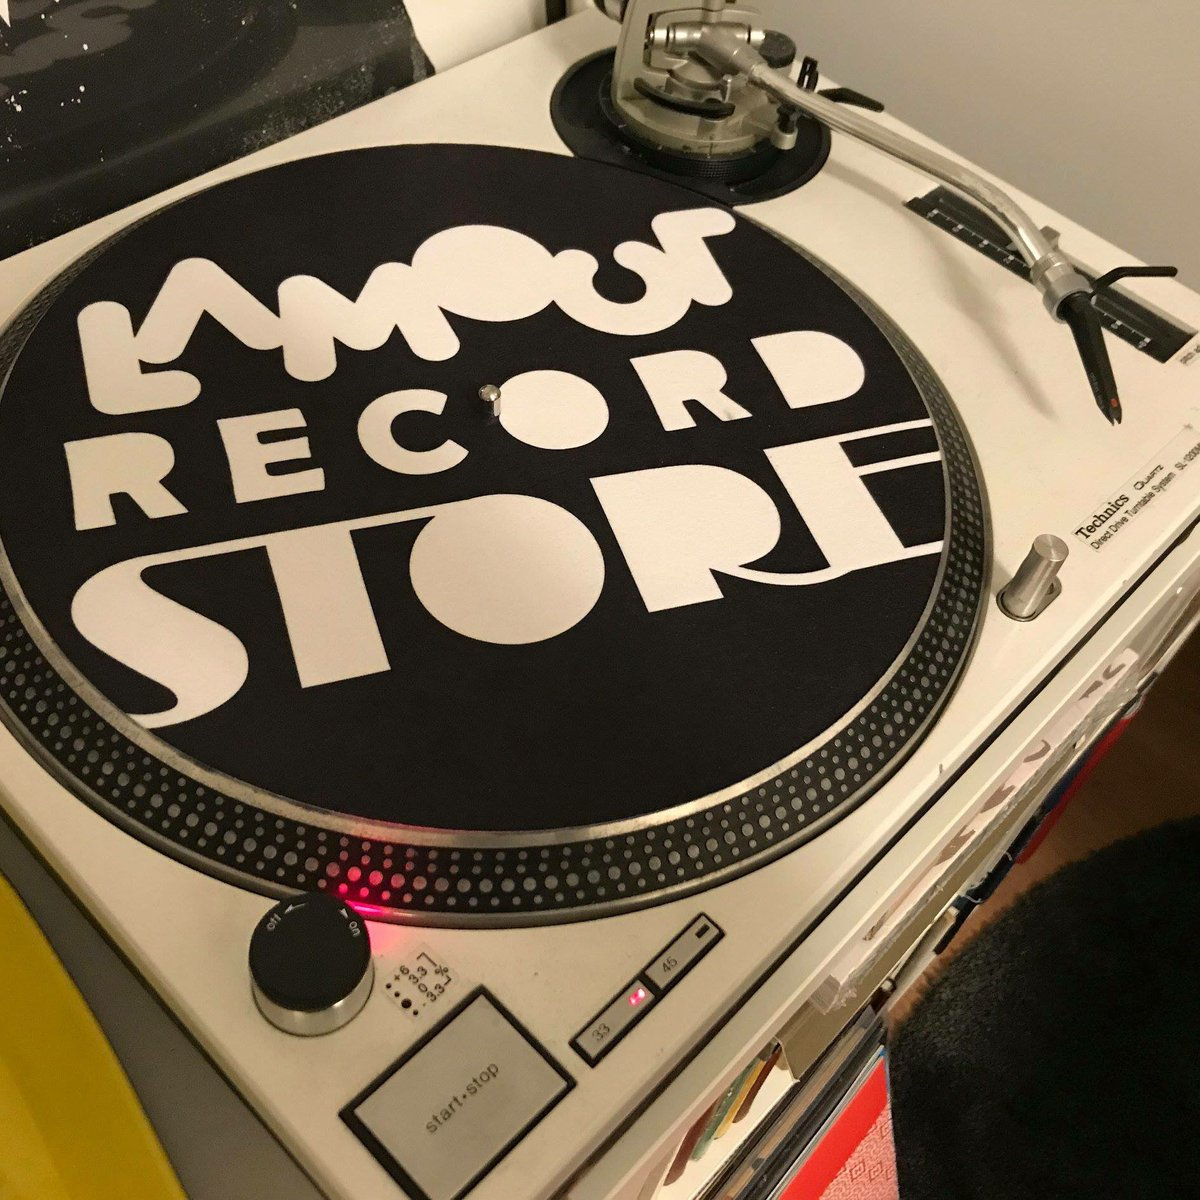 Lamour records on Twitter: